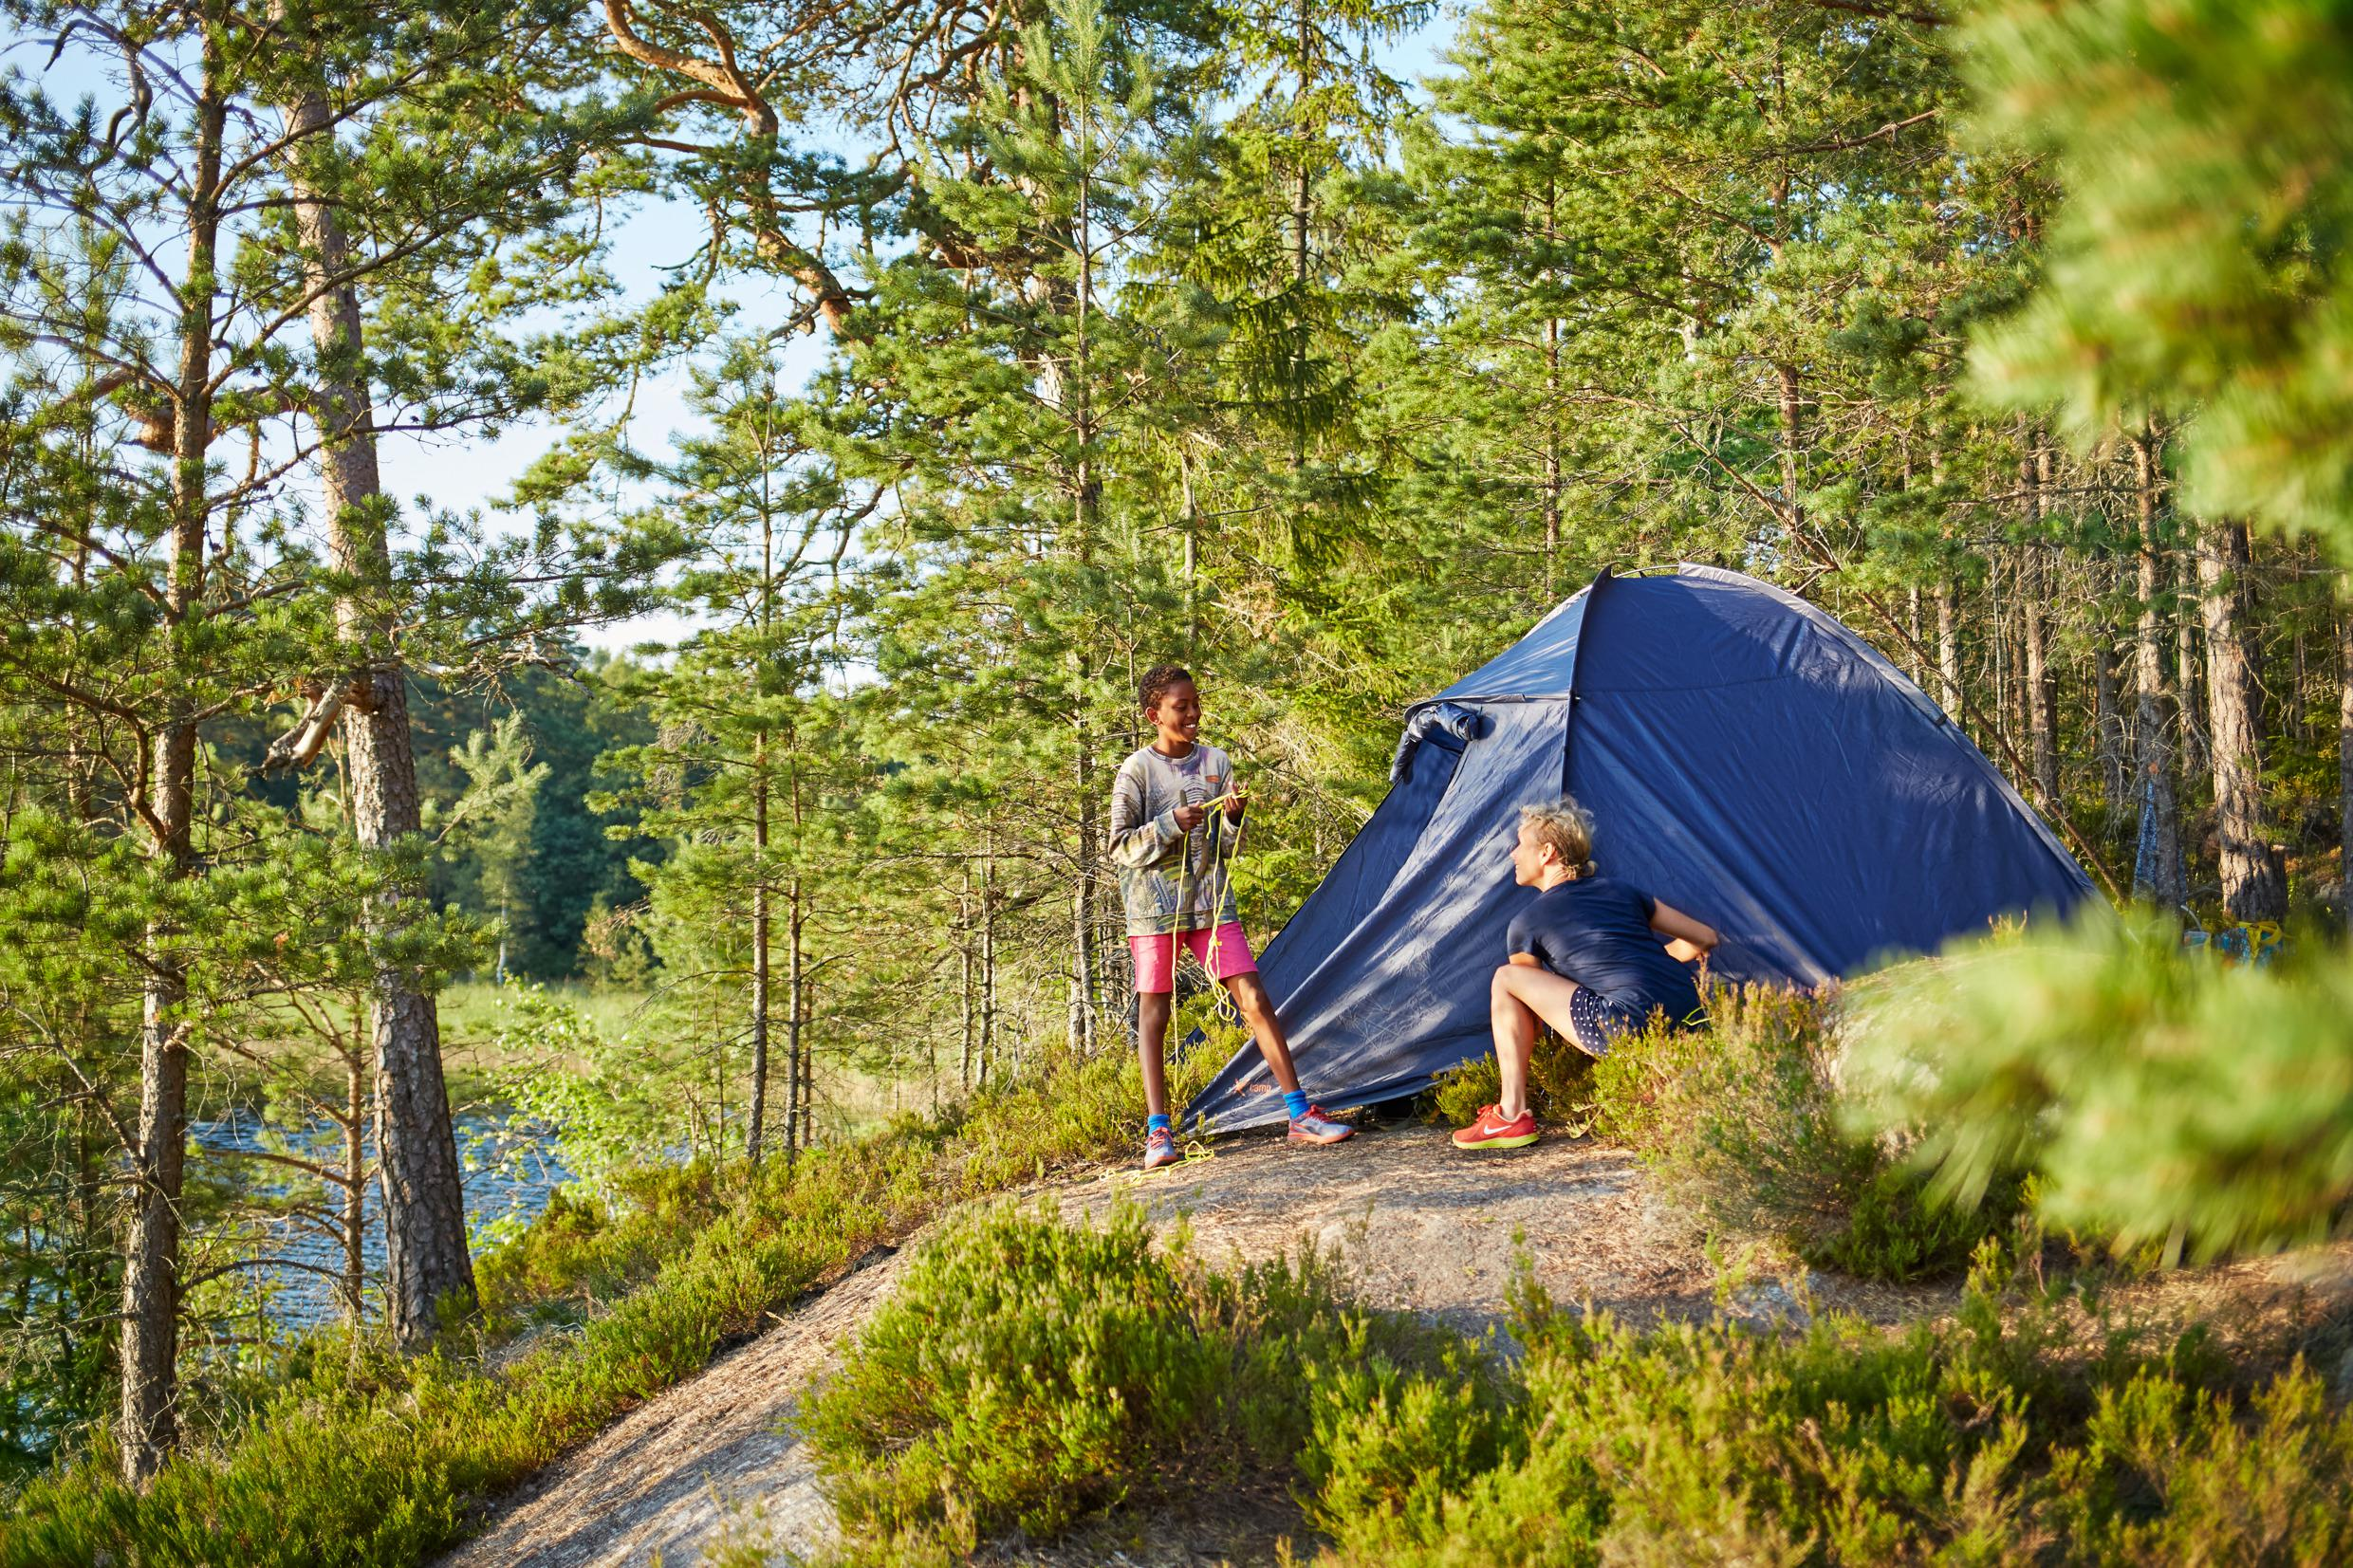 The Qualities of Camping Out in France - Inexpensive Luxurious Yet Pleasant